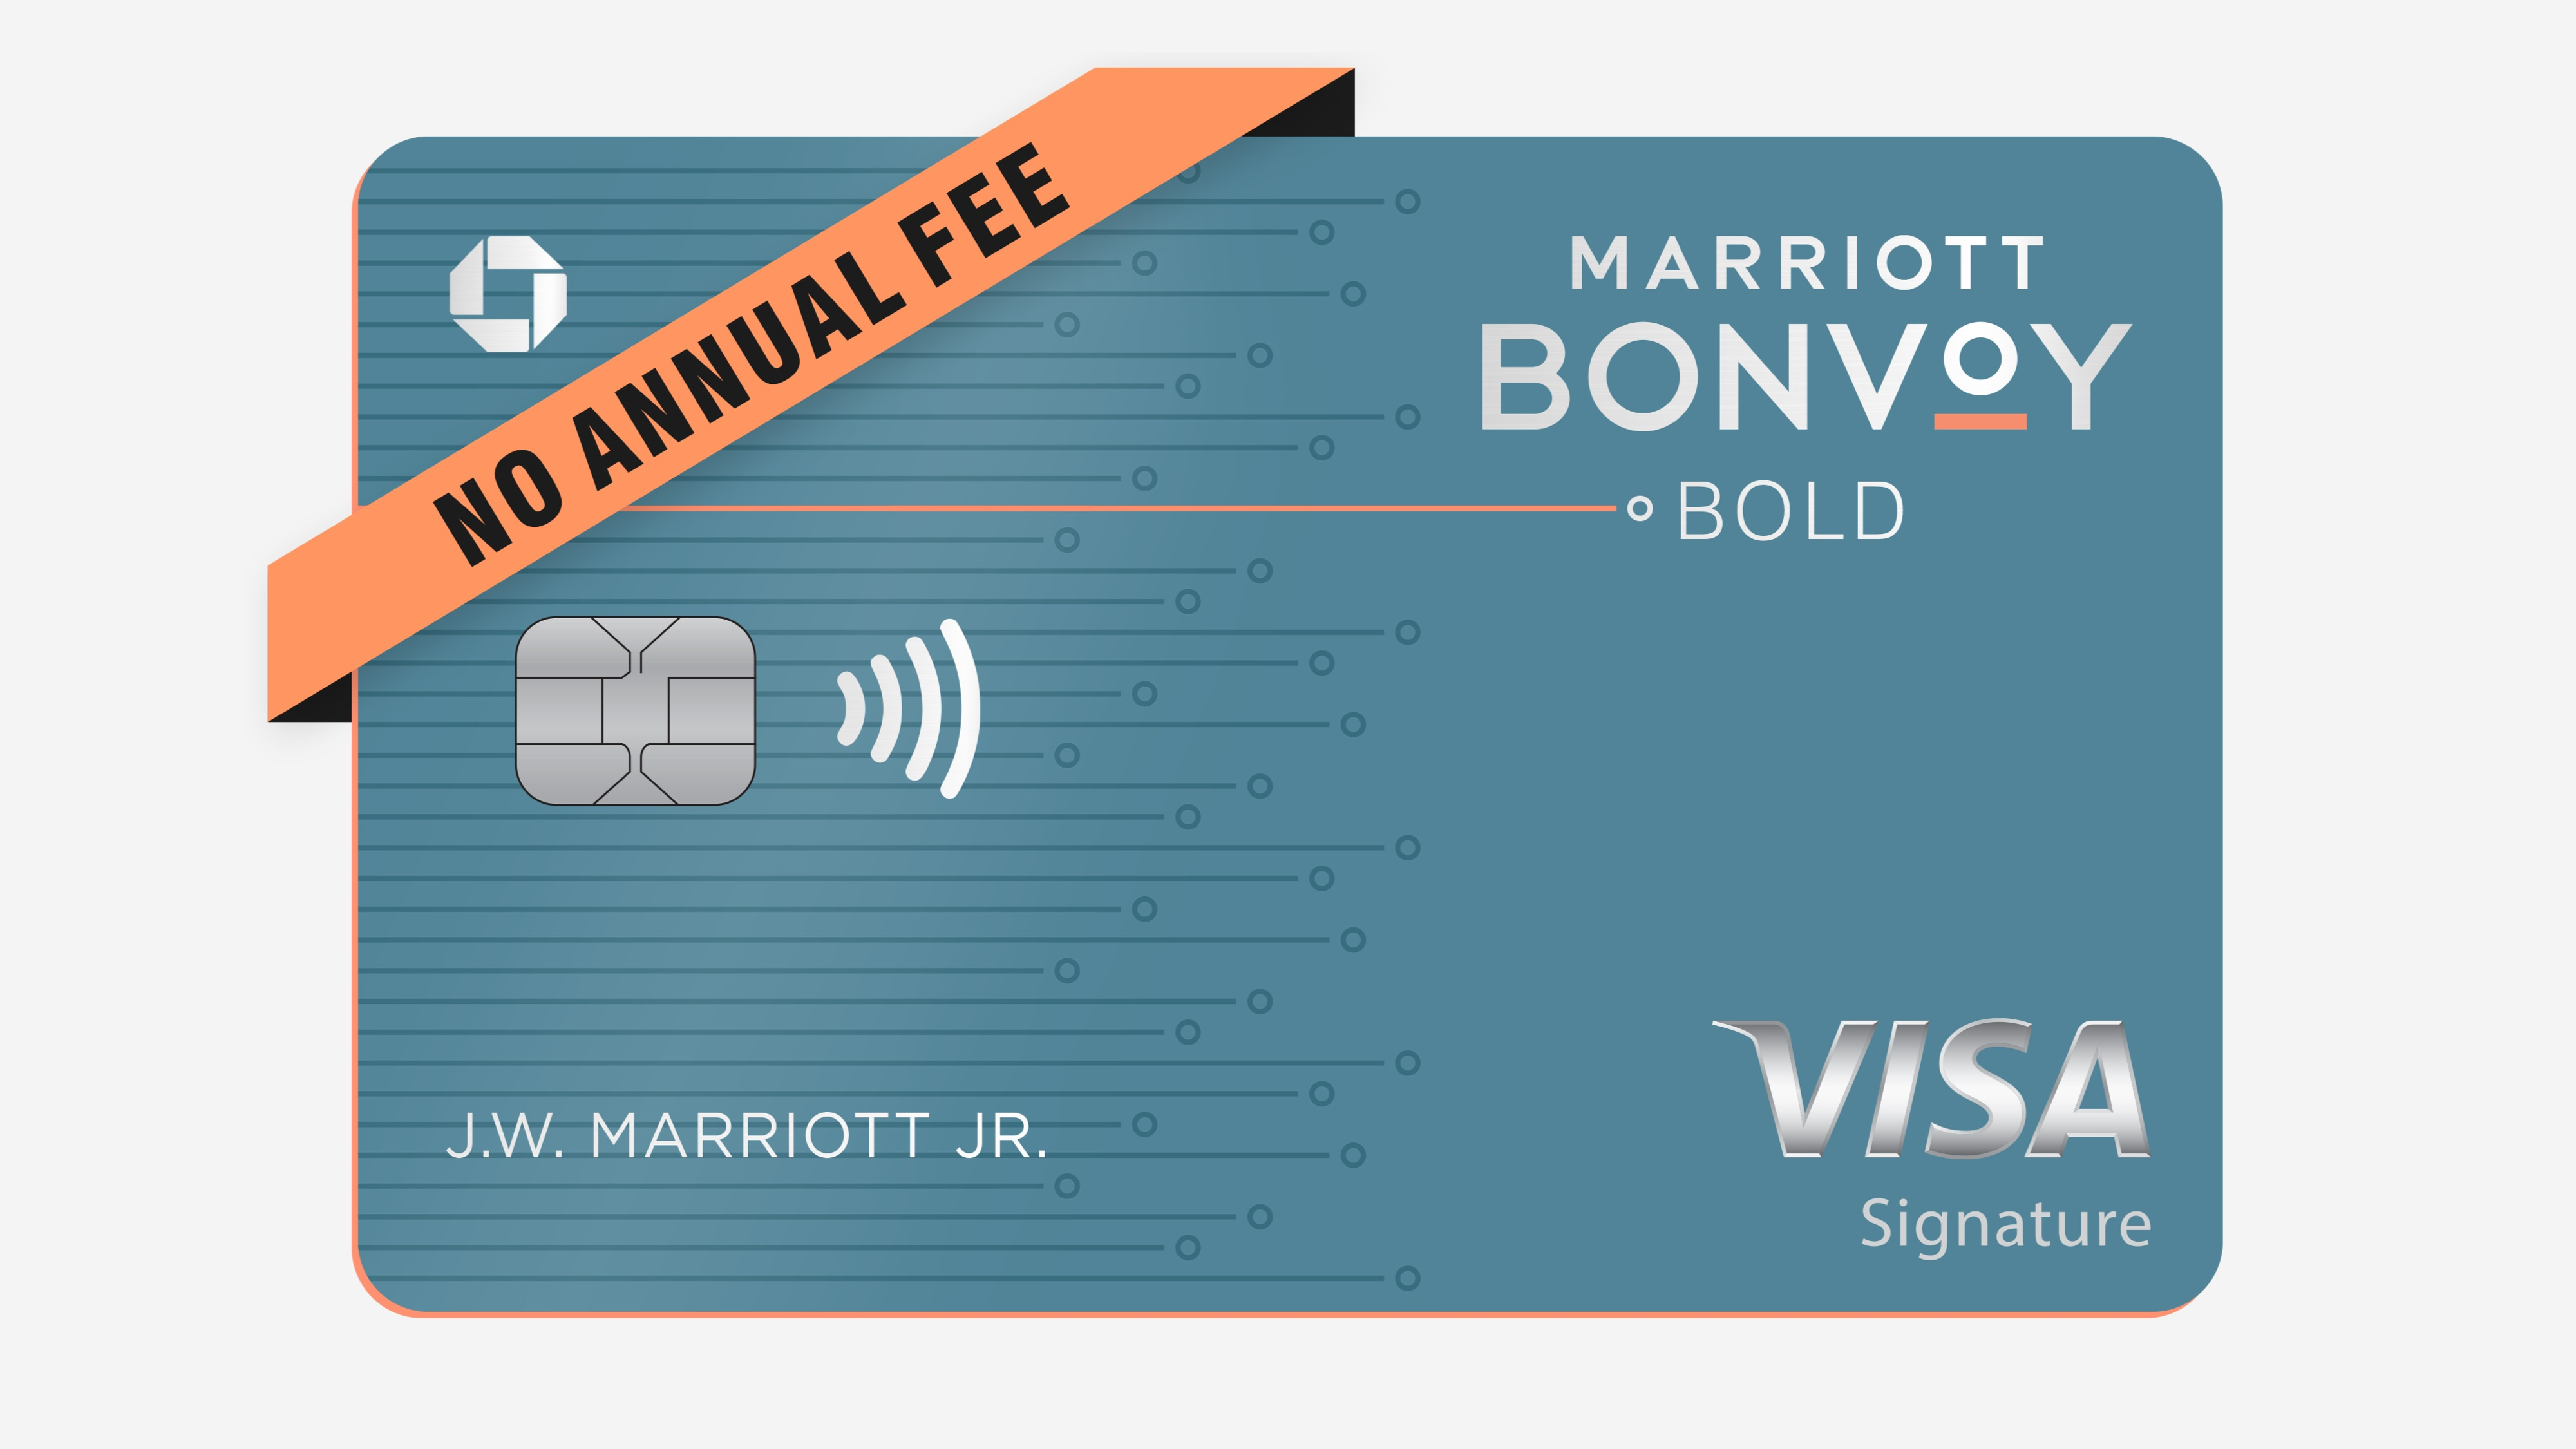 How to Earn Hotel Loyalty Points | Marriott Bonvoy